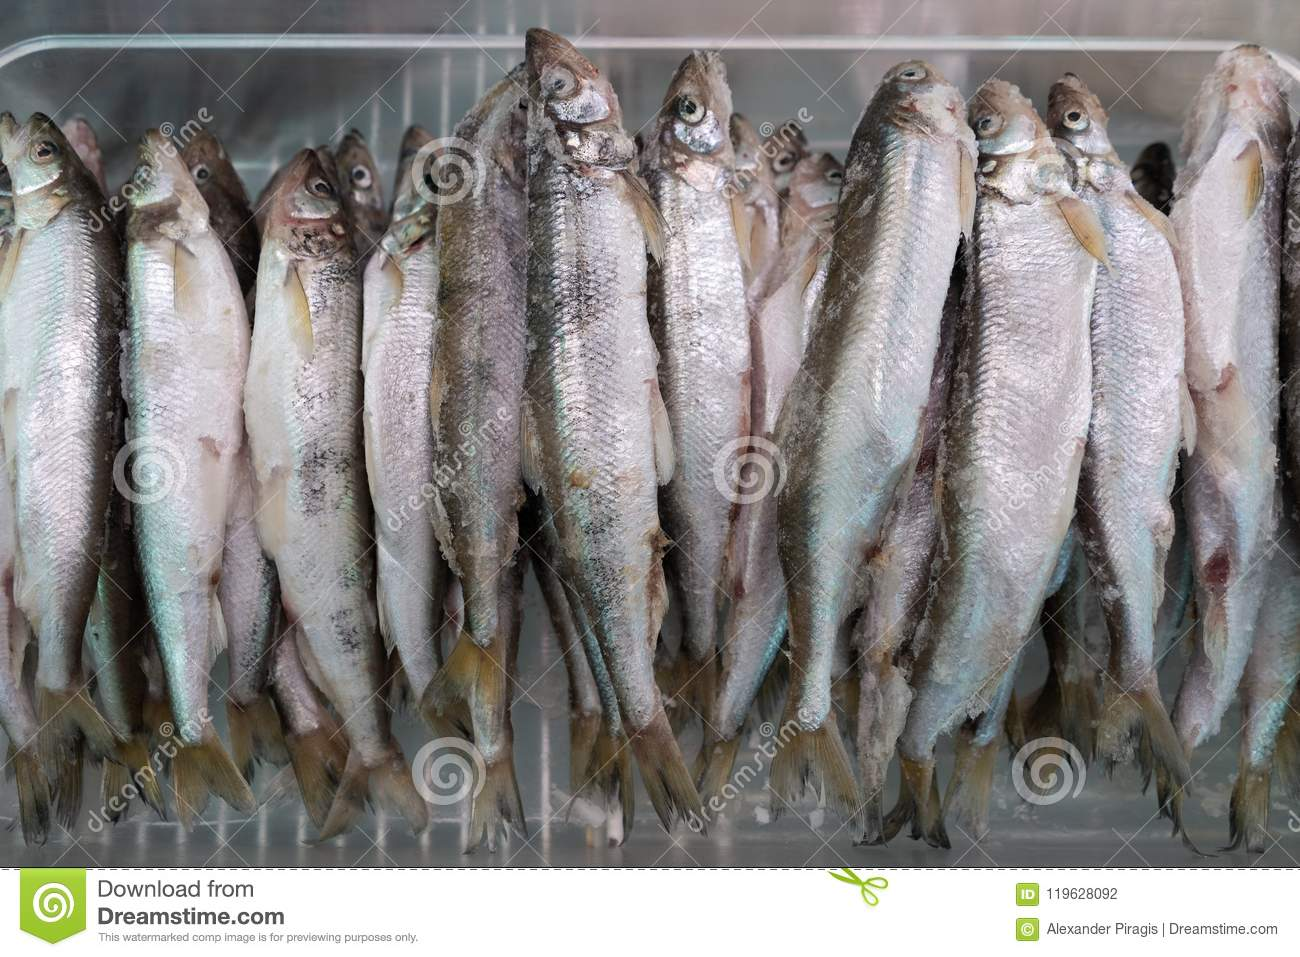 Lot of frozen smelt fish in freezer at seafood market